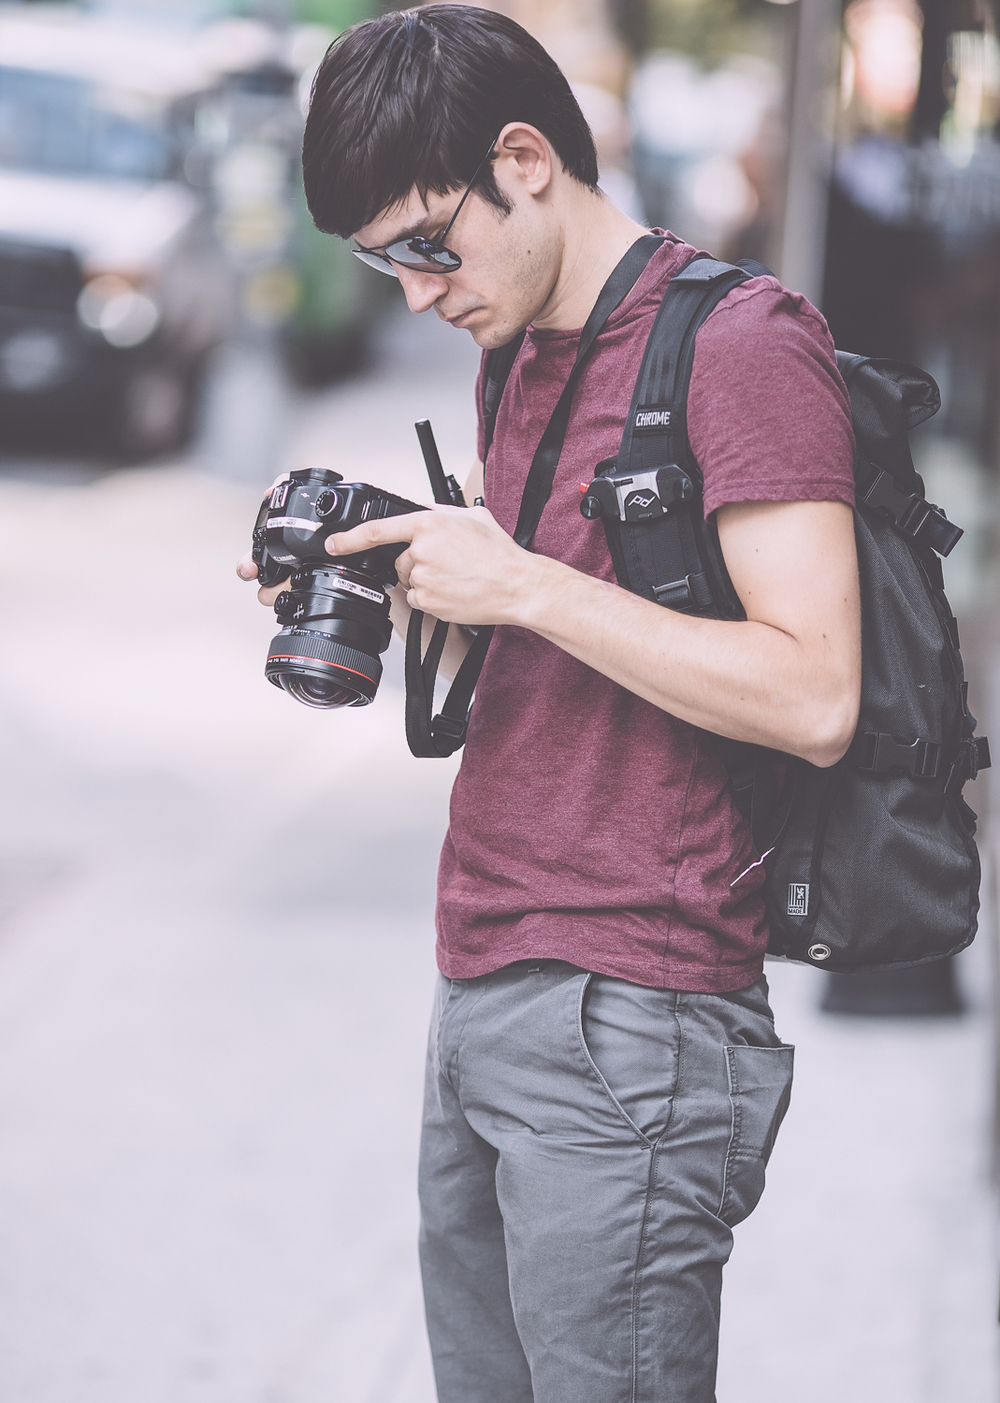 Assistant Brian Checking His Peak Design Leash Secured Canon 5DMKII and Rocking the Capture PRO Clip. Makes Moving Around NYC Streets Much More Safe With an Expensive DSLR